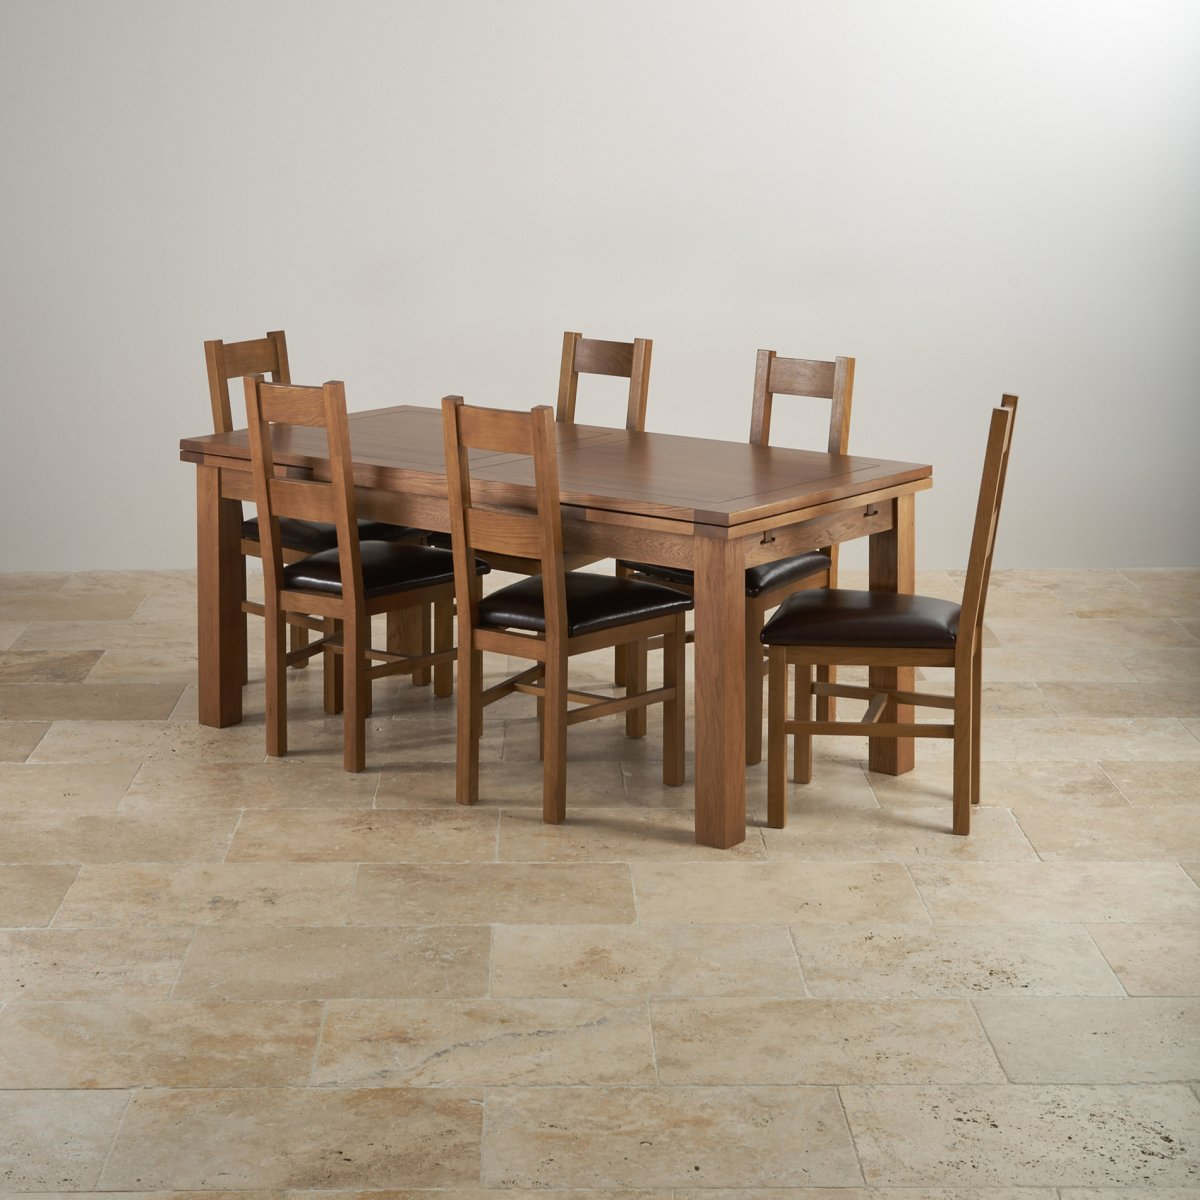 Oak Kitchen Tables And Chairs Sets: 6ft Table With 6 Chairs